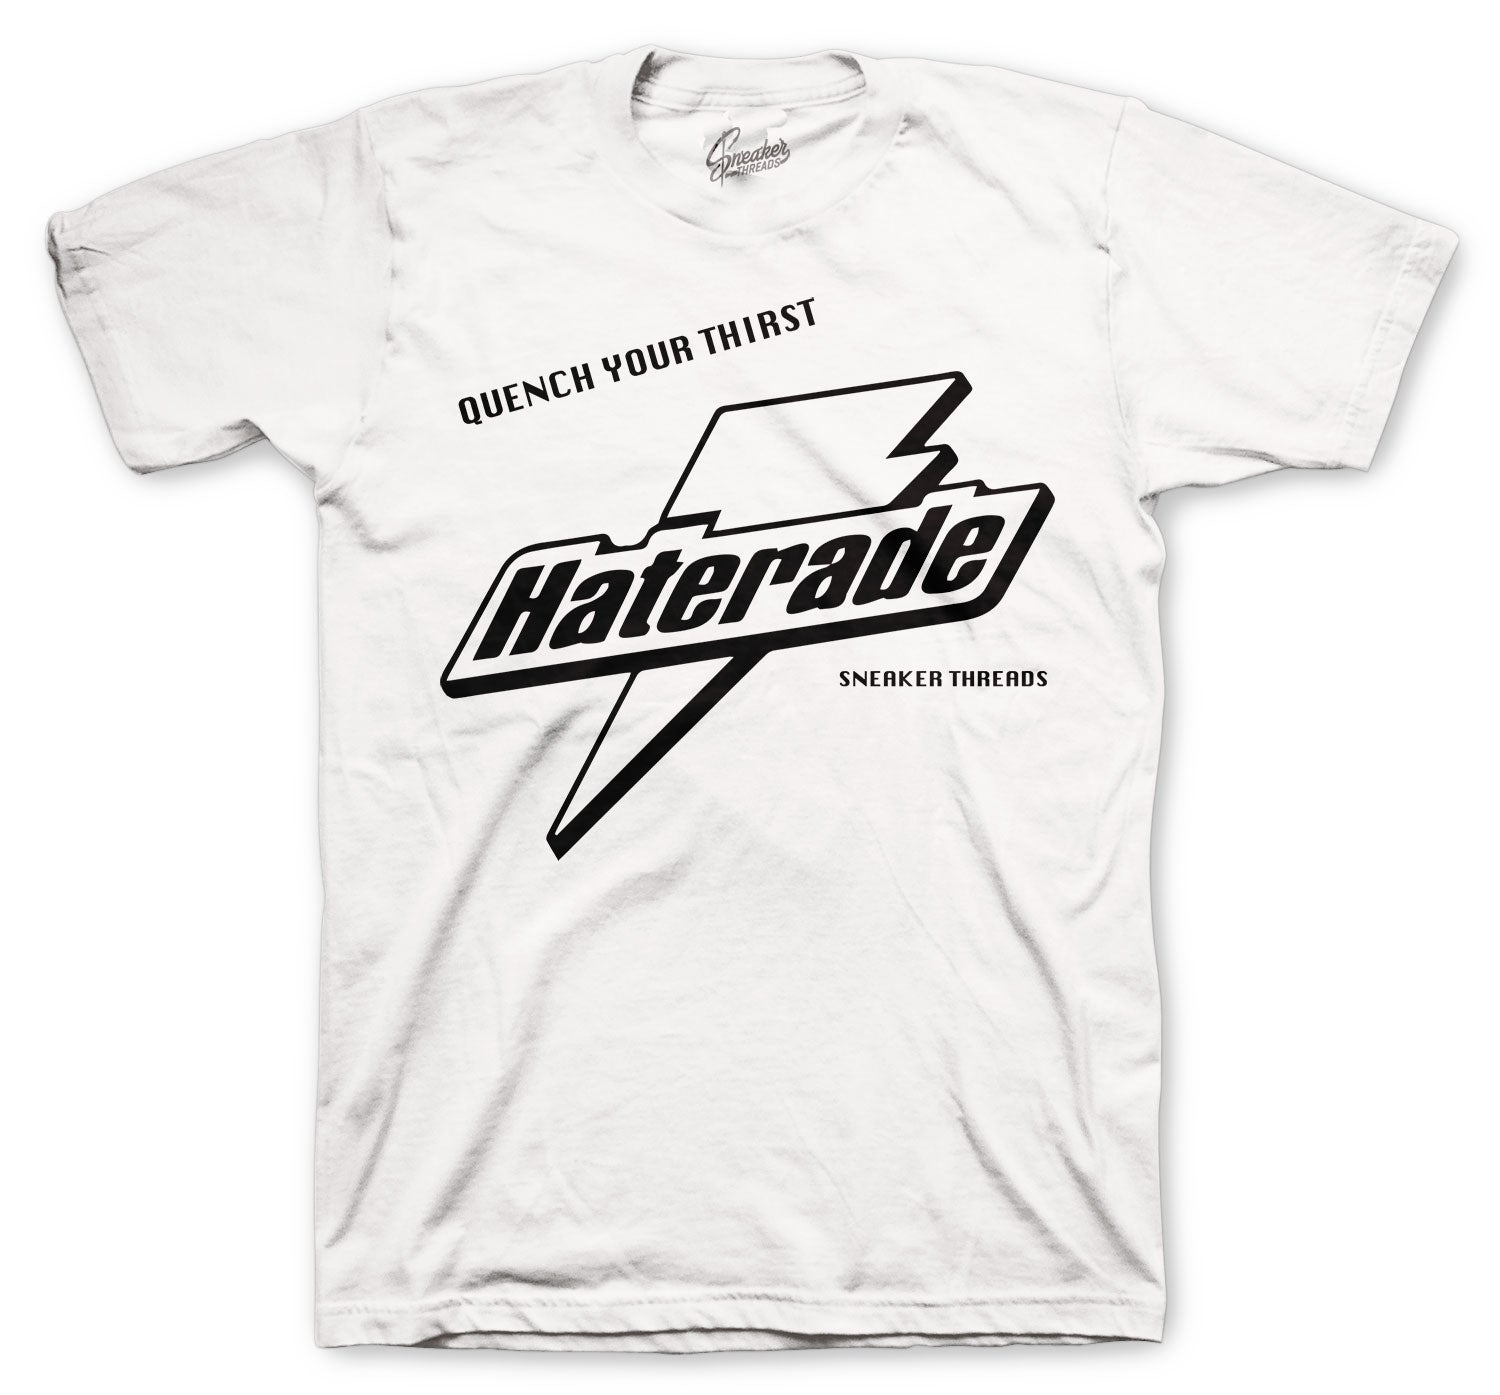 Foam Pro White/Black Shirt - Haterade - White